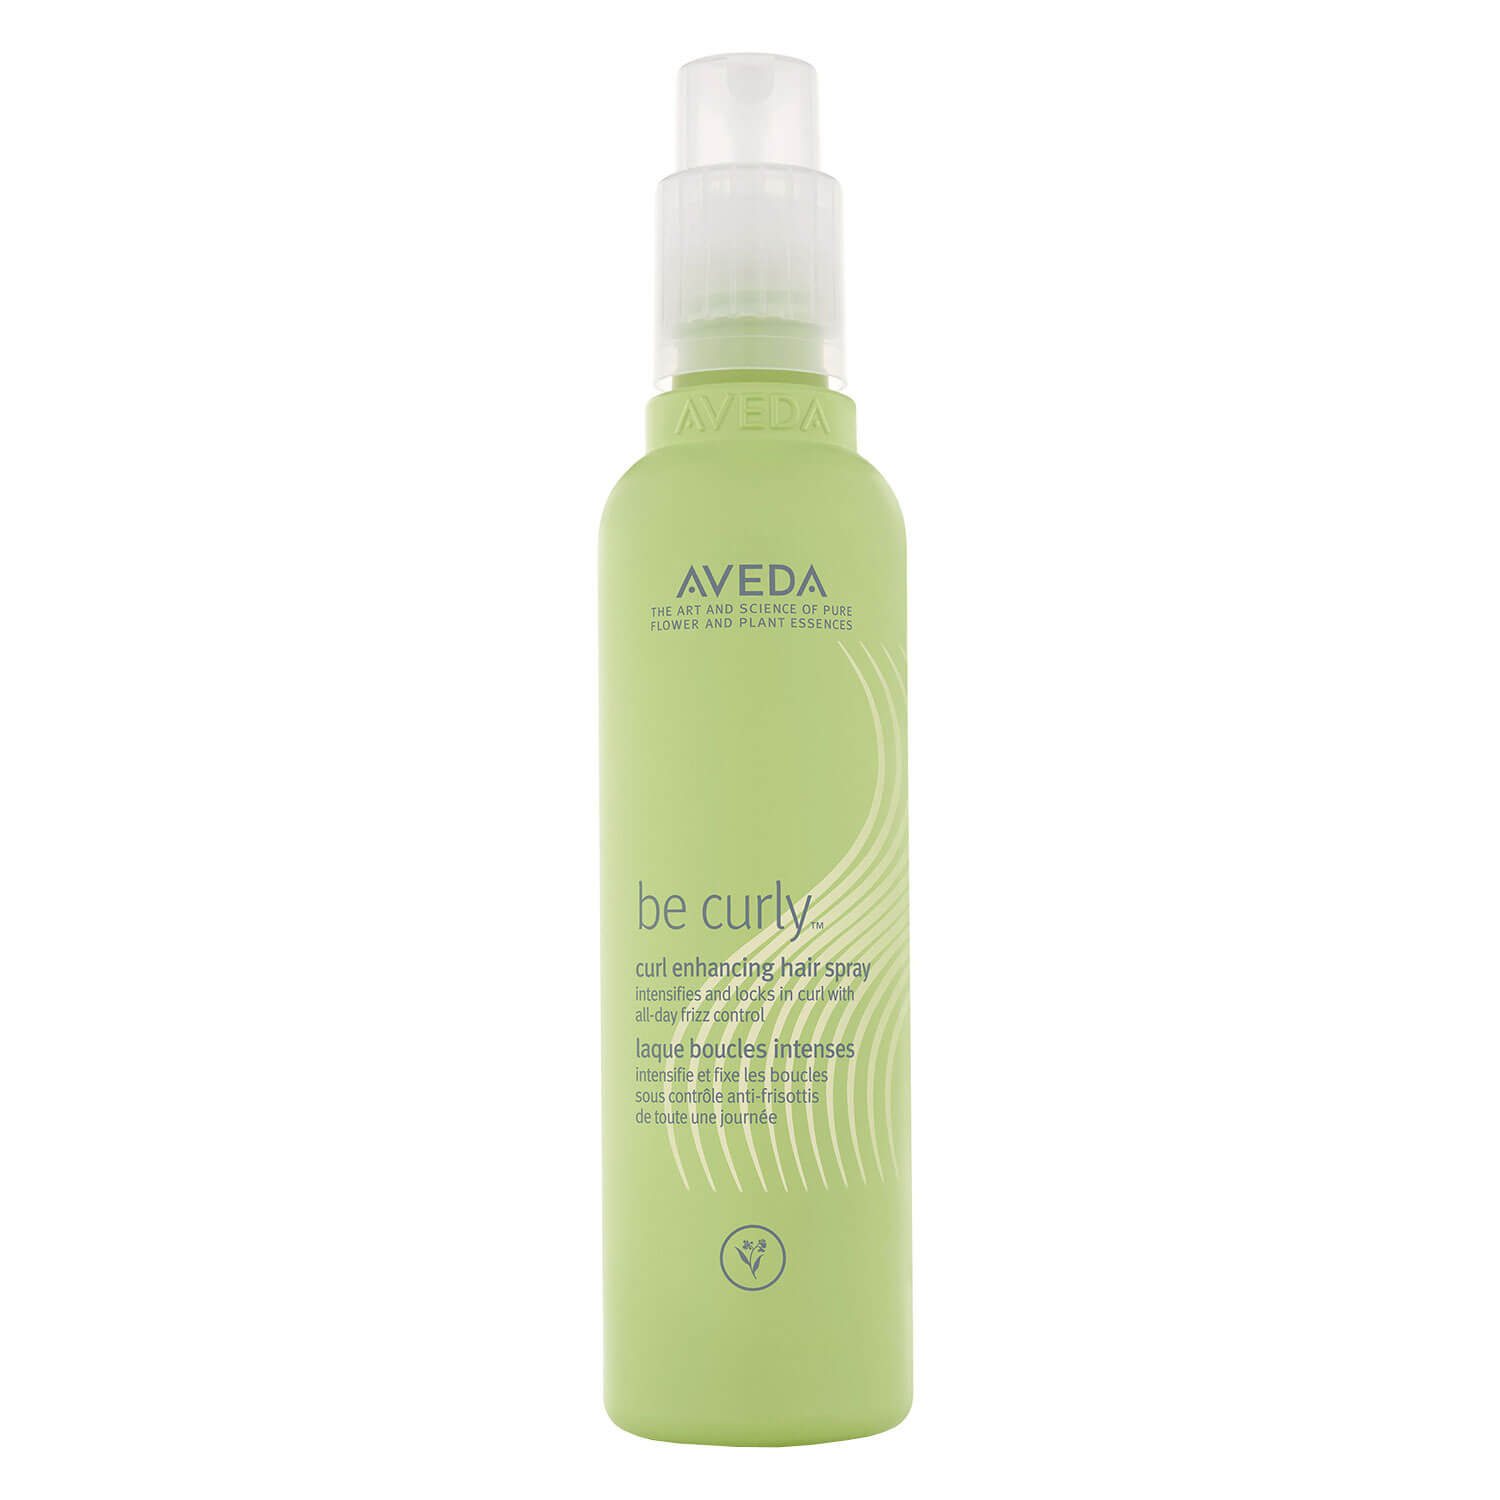 be curly - curl enhancing hair spray